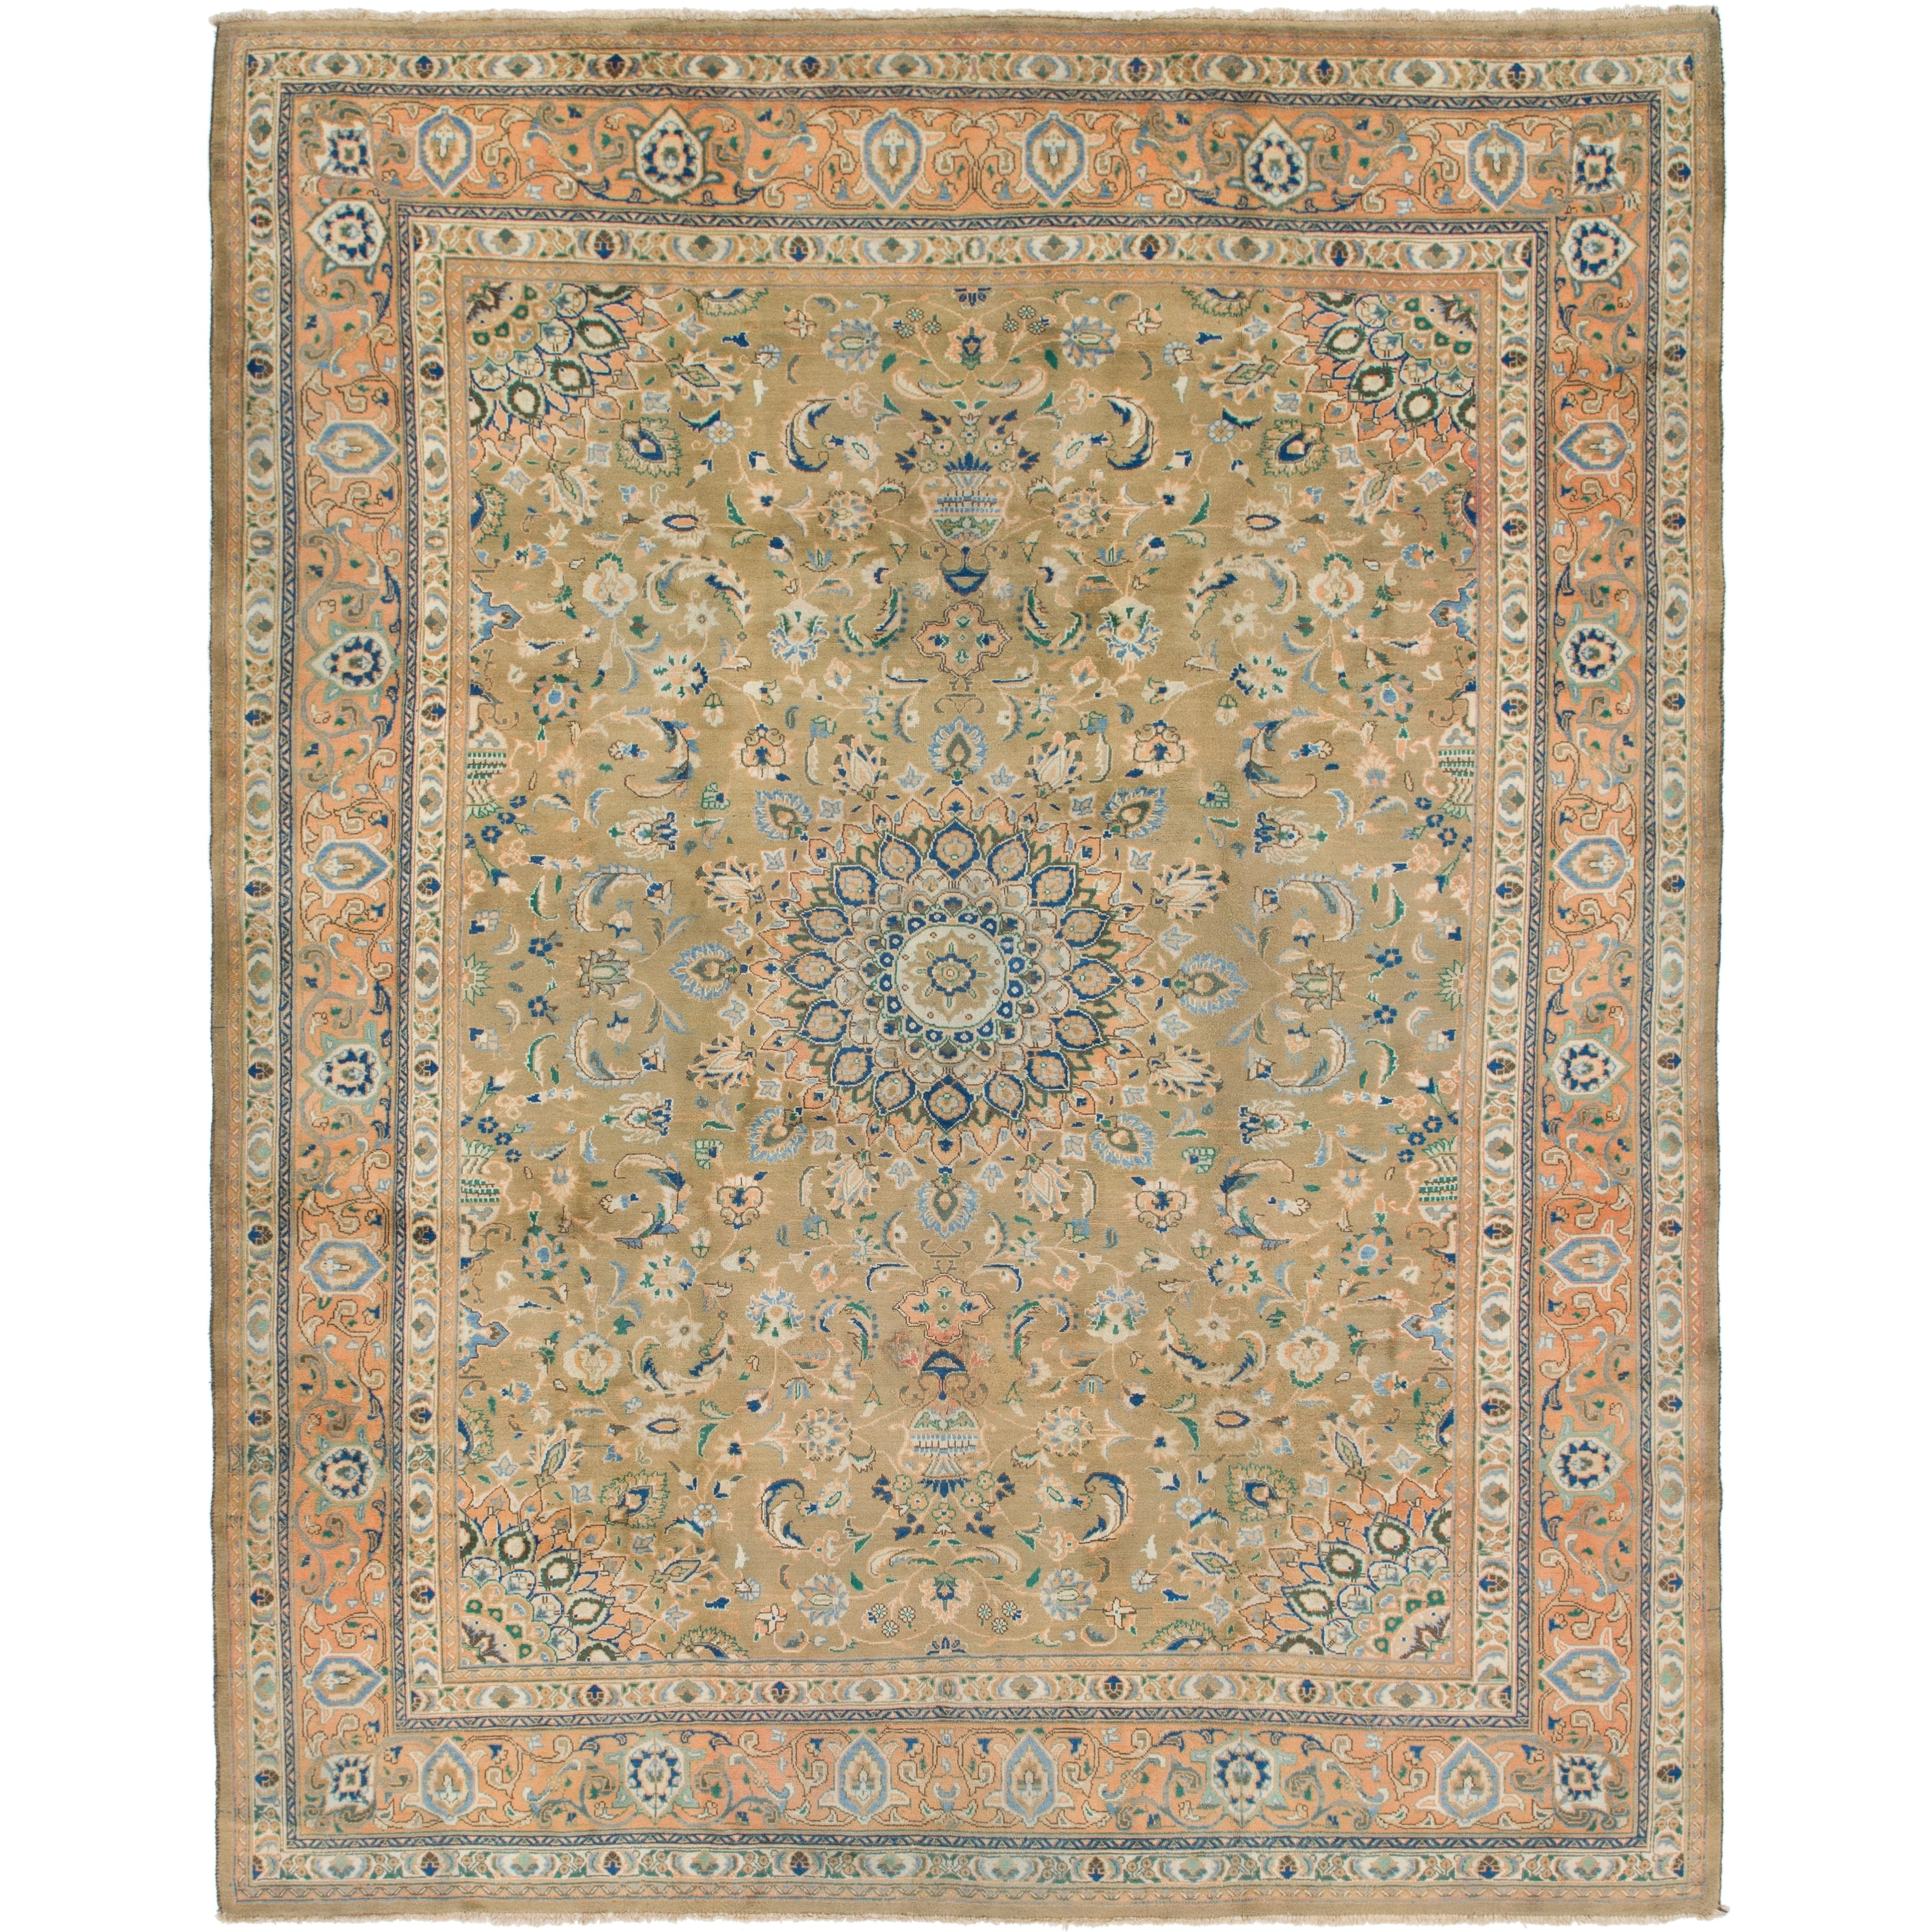 Hand Knotted Kashmar Semi Antique Wool Area Rug - 9 7 x 12 5 (Olive - 9 7 x 12 5)